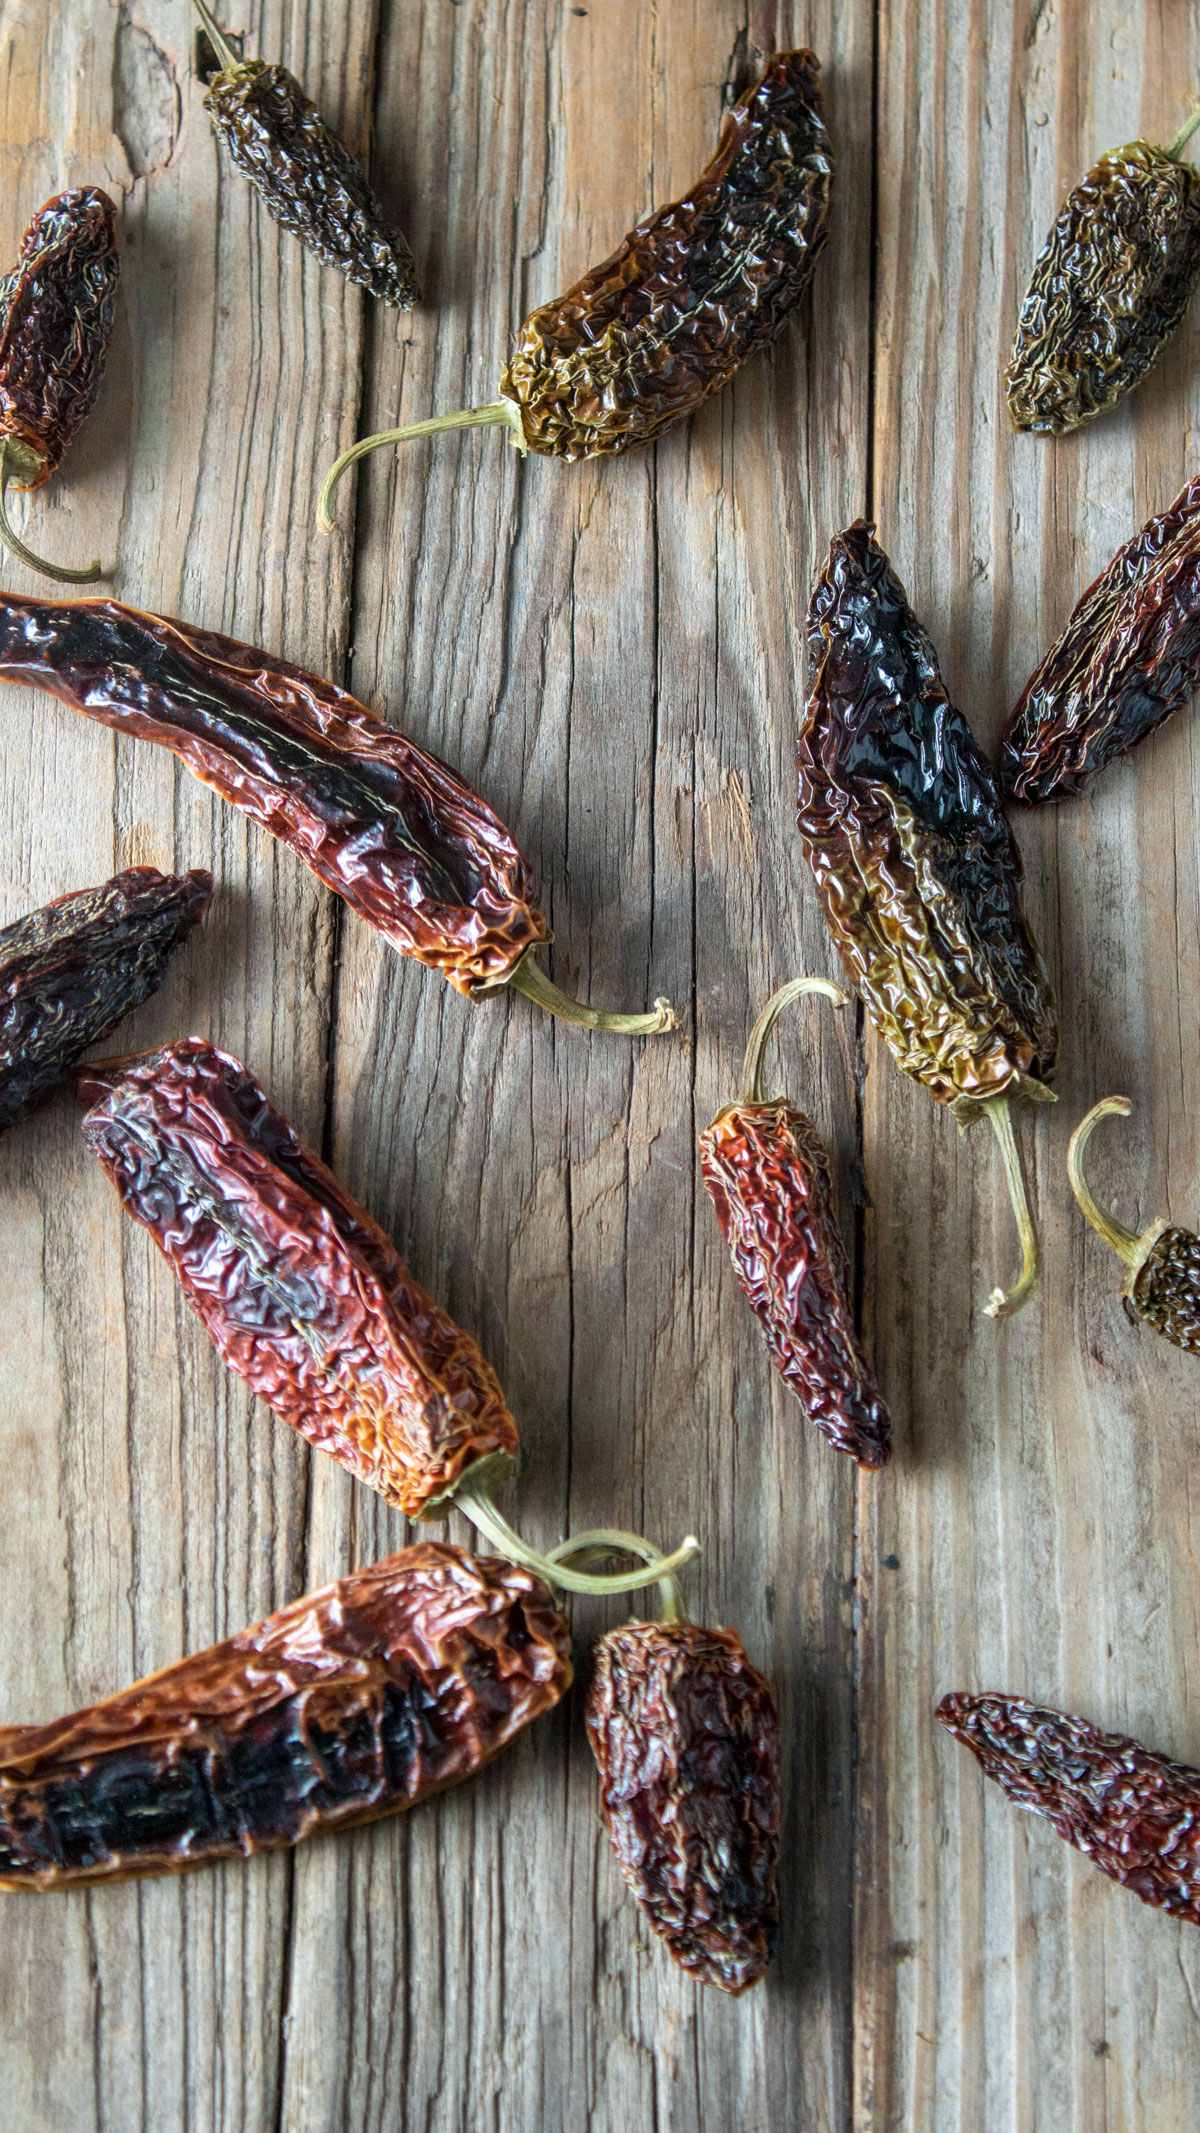 dried chipotle peppers on barnwood